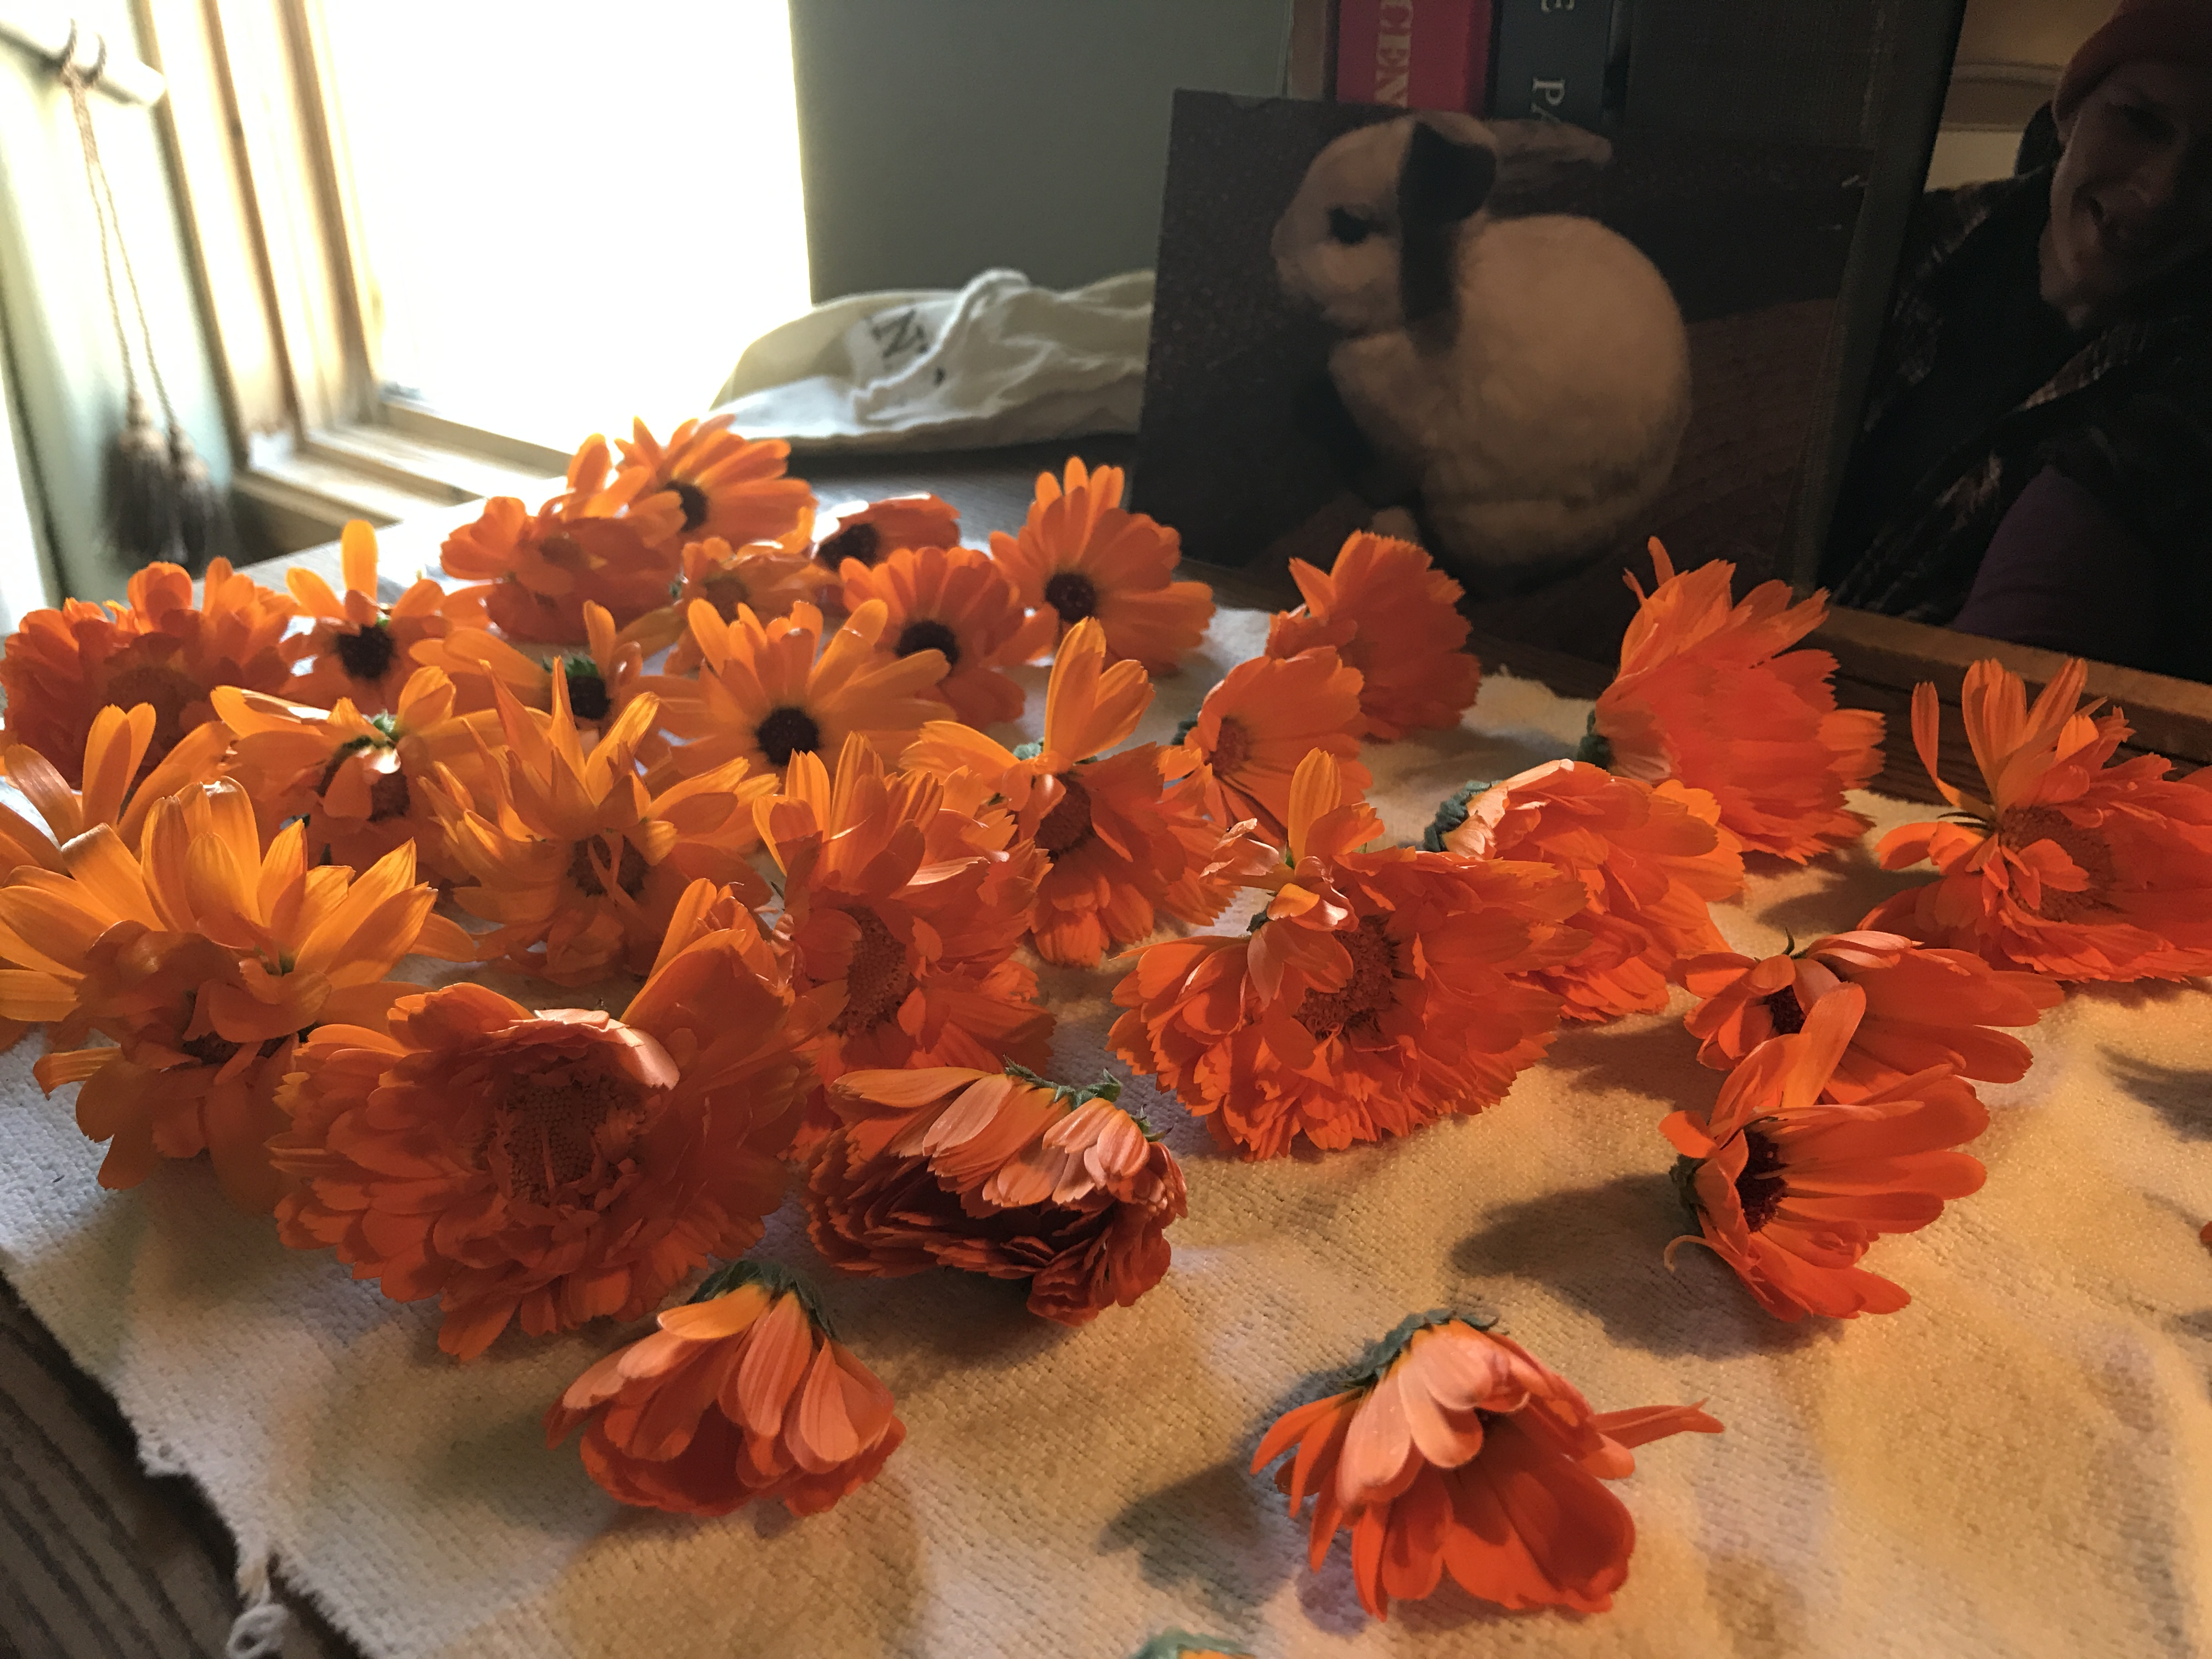 Freshly harvested calendula blossoms